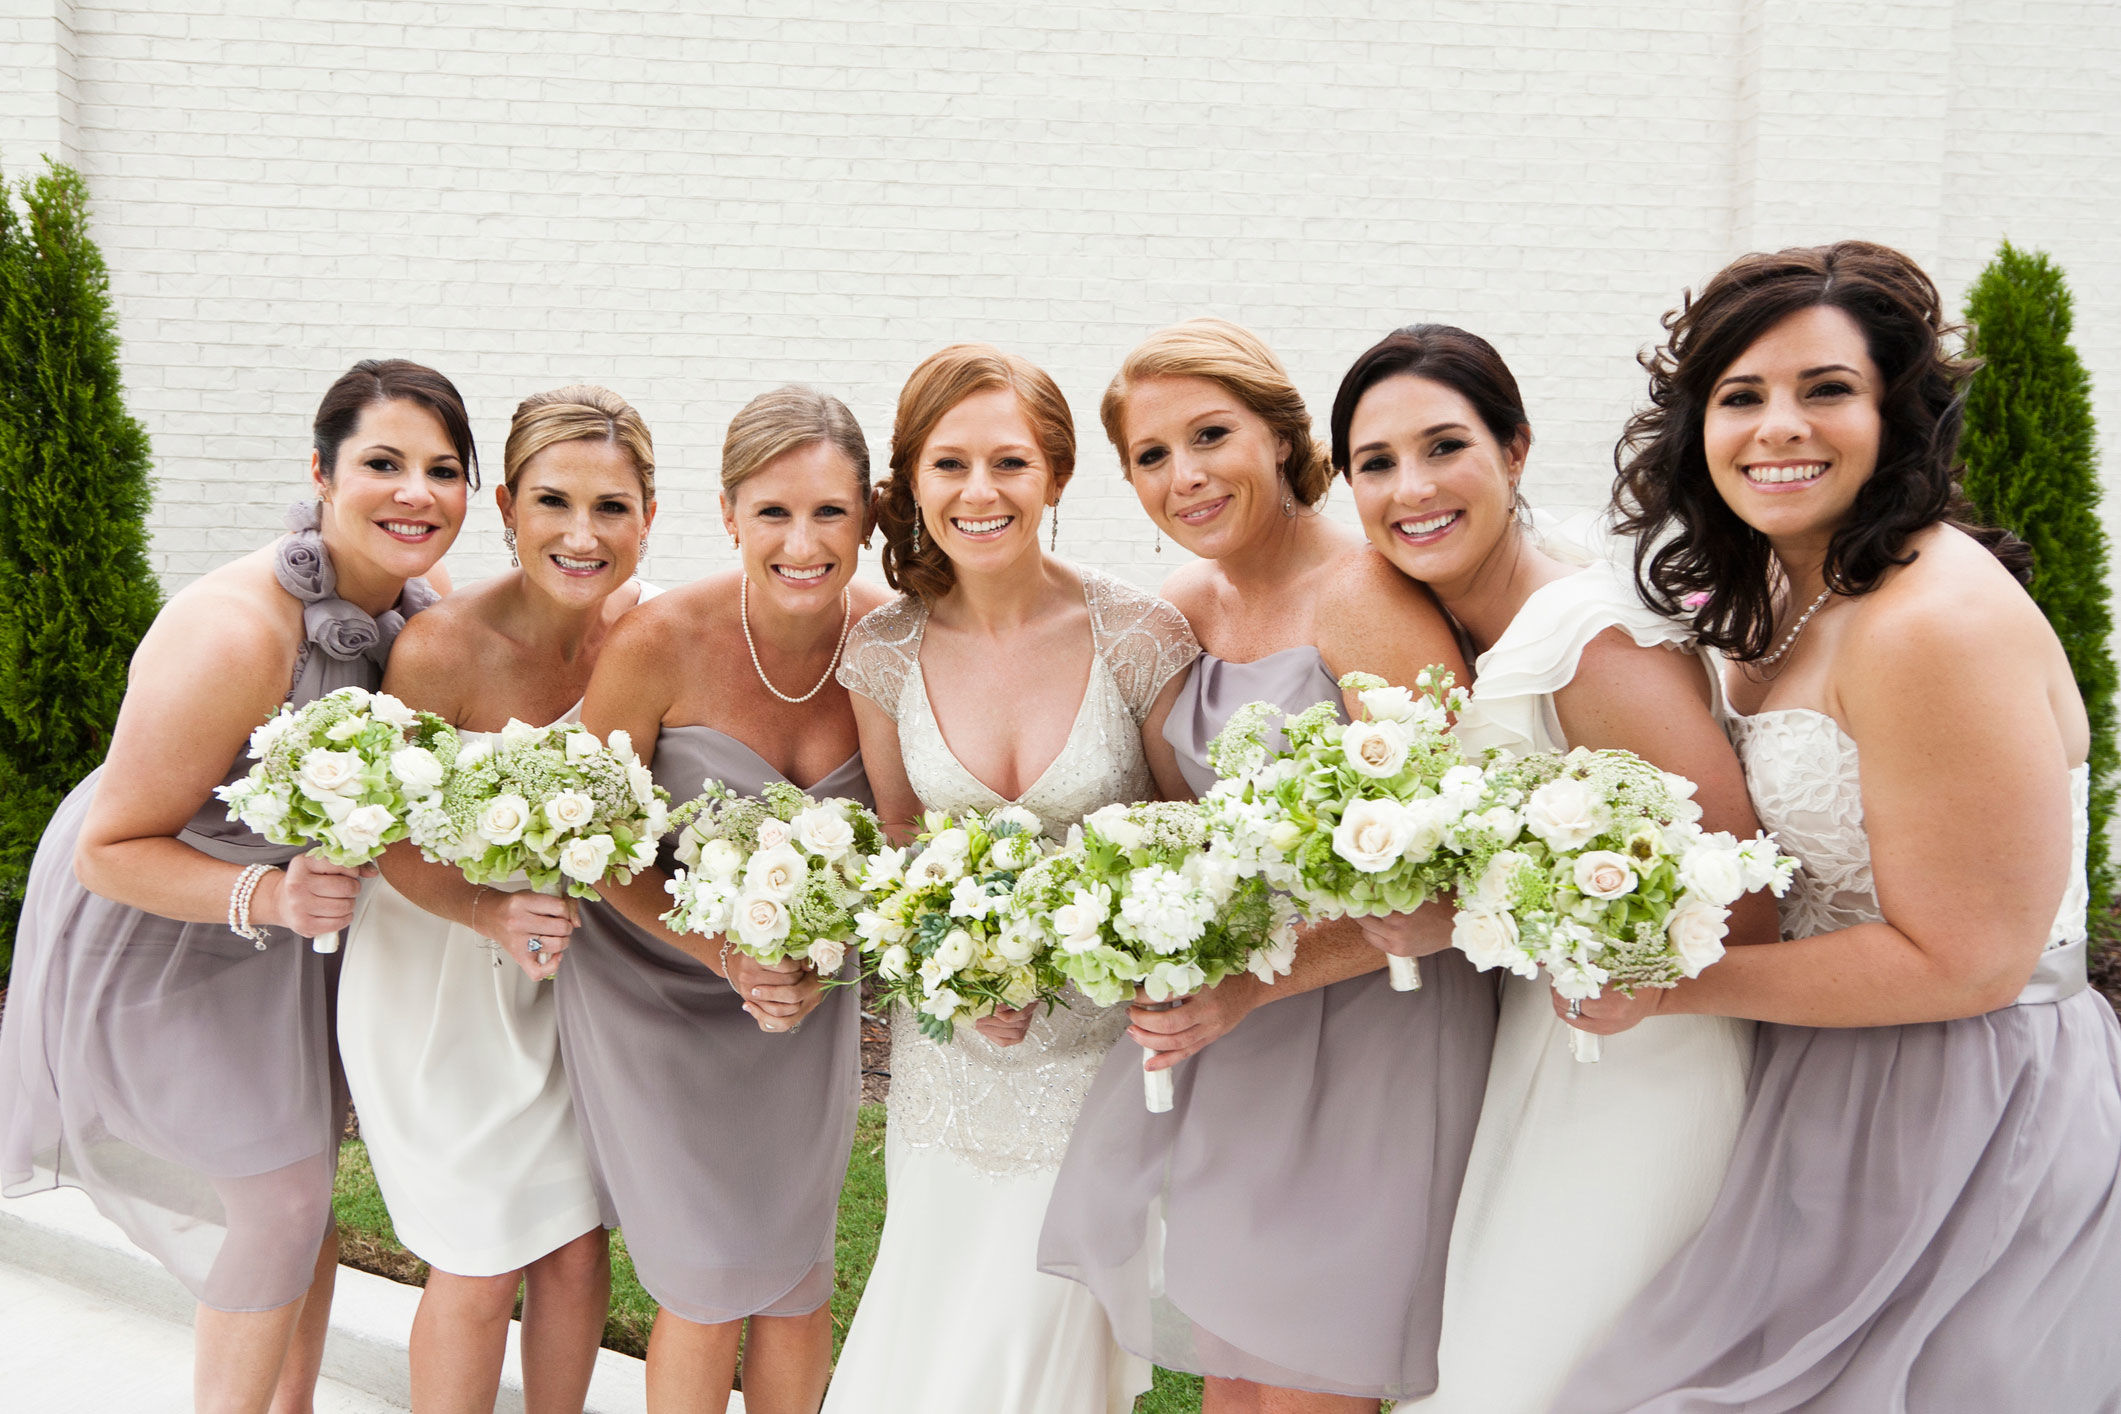 Can You Turn Down a Bridesmaid Invite?